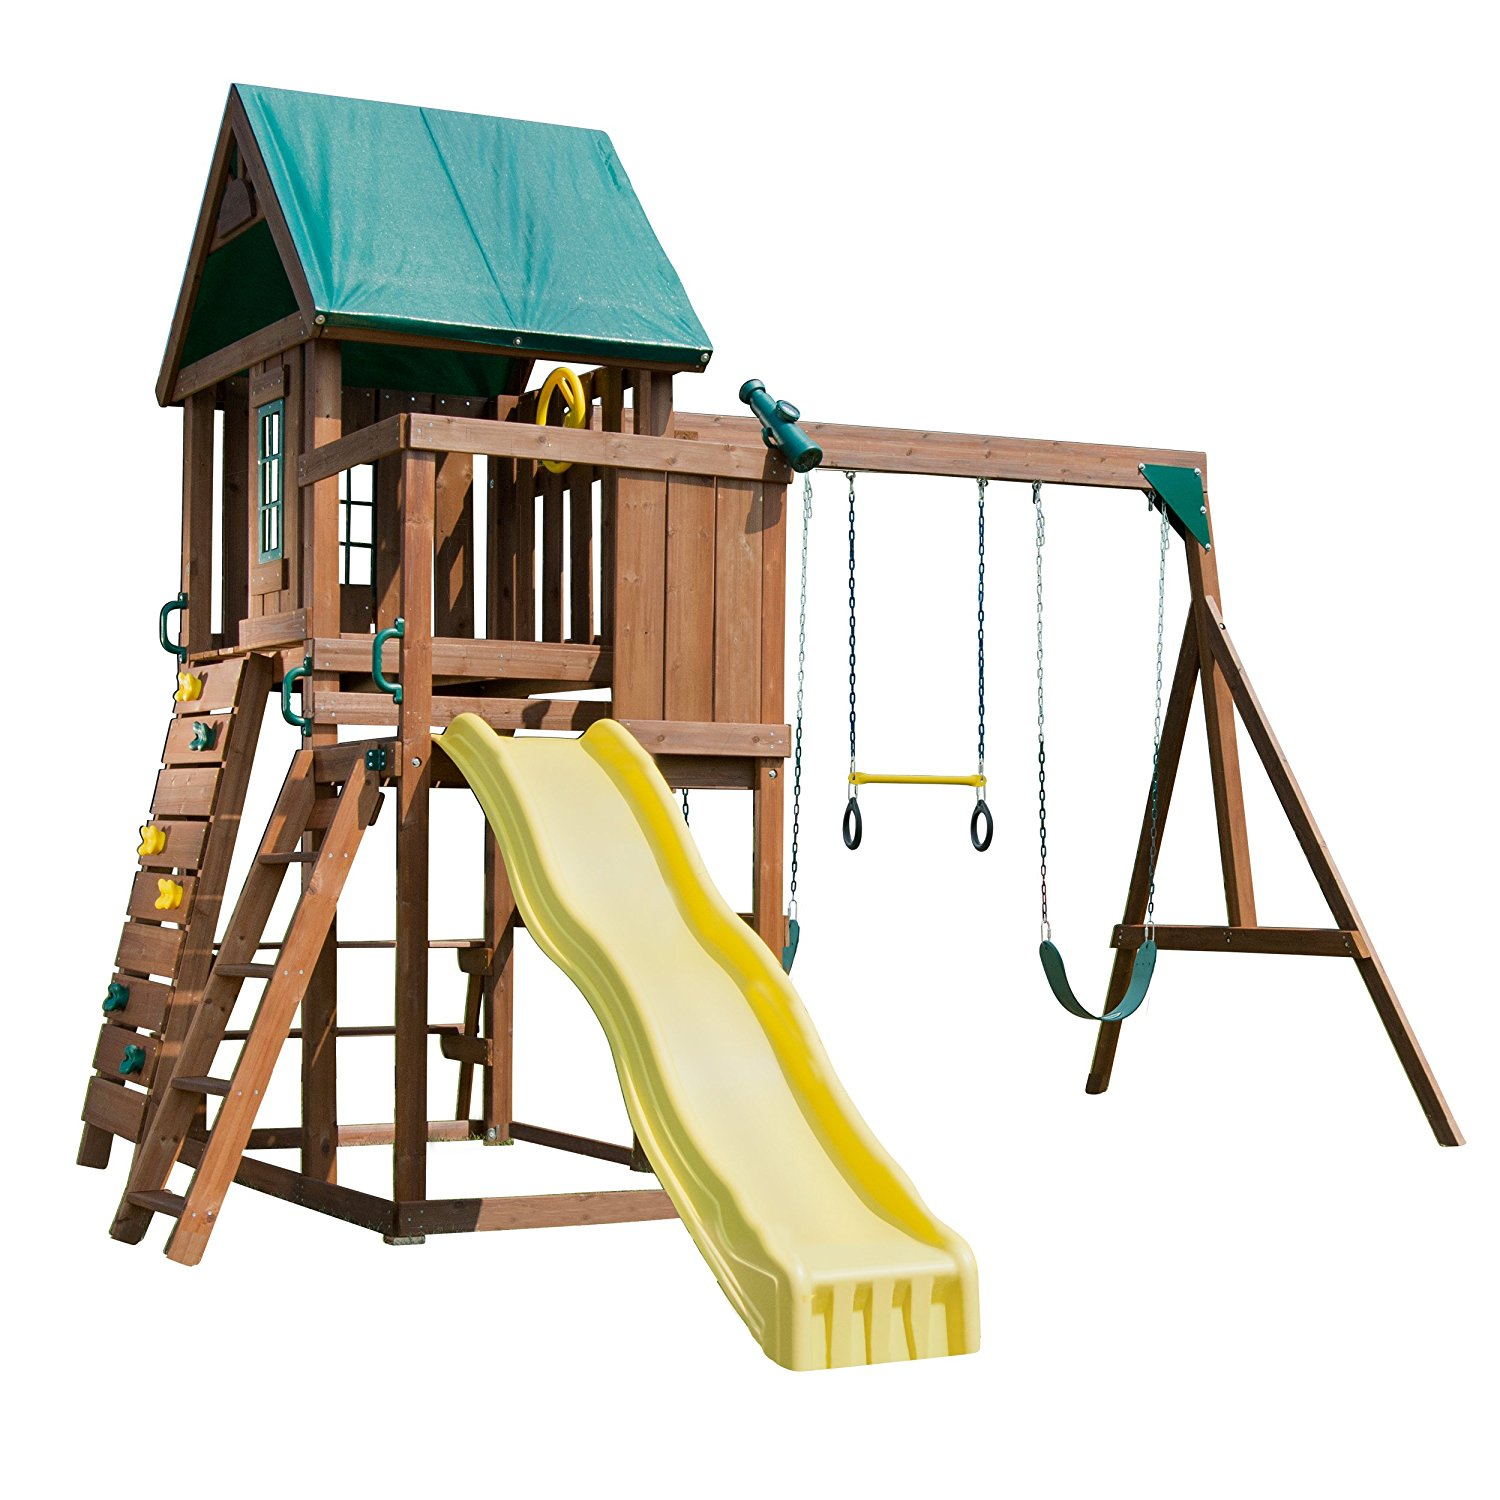 out equipment n itm set slide almost playground sold swing house outdoor playset swingset kids play